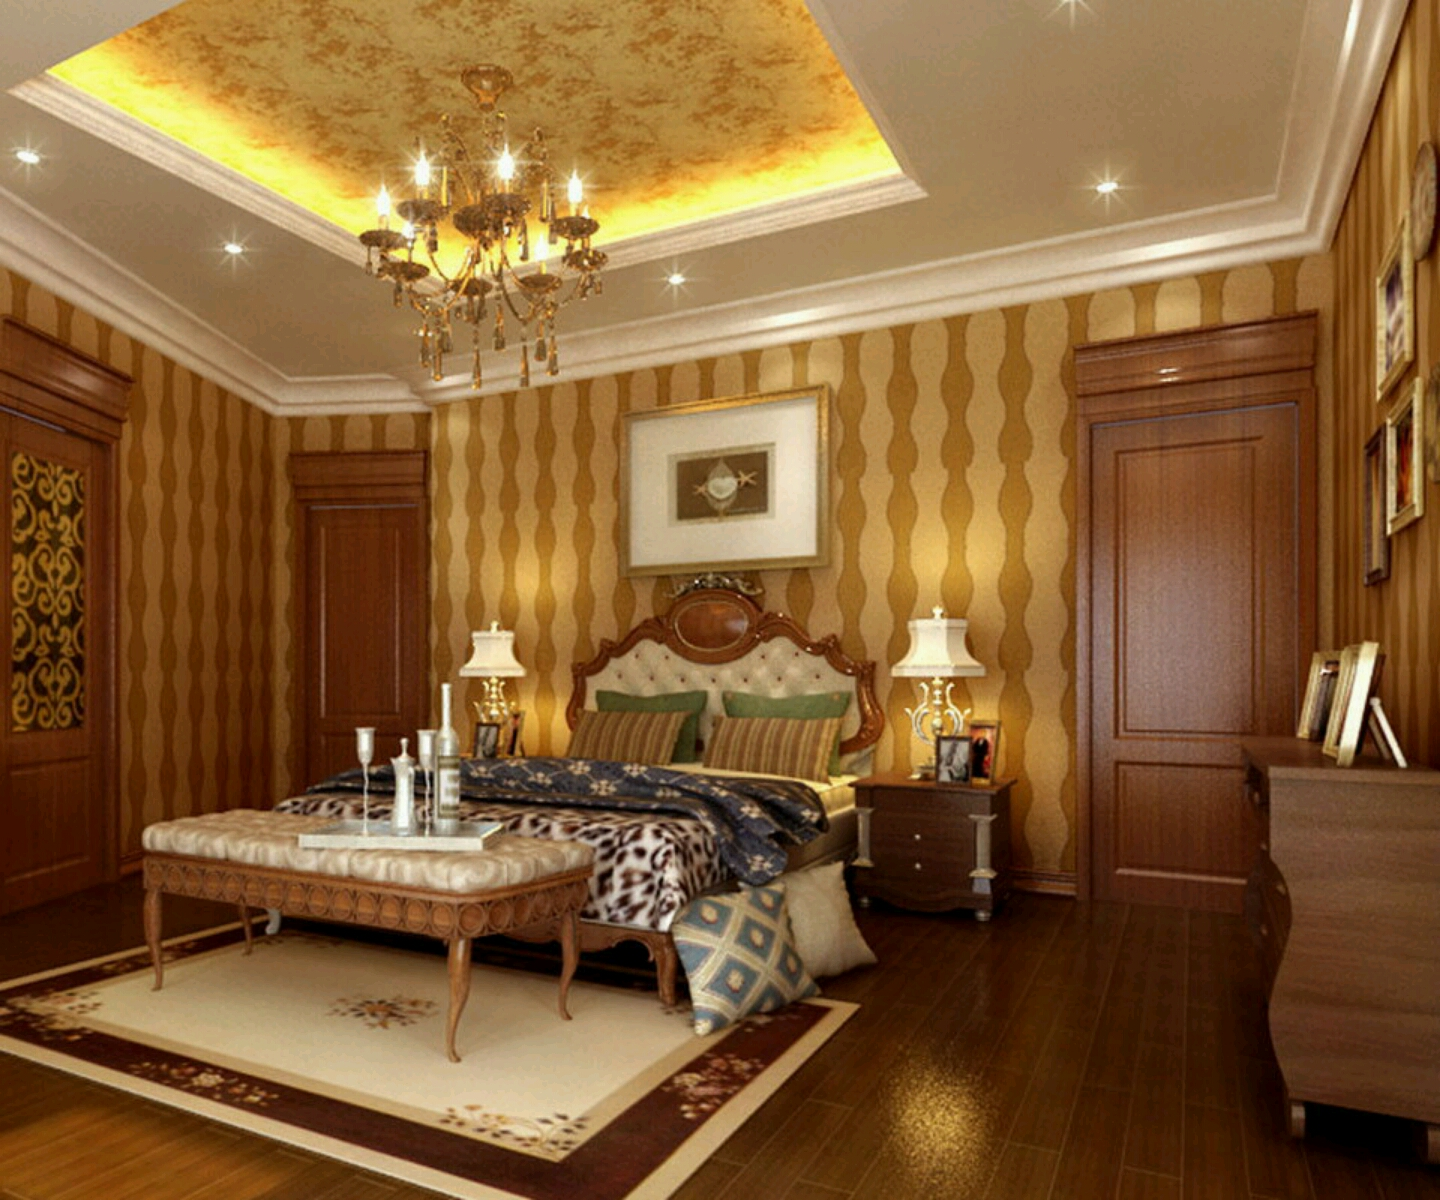 New home designs latest modern bedrooms designs ceiling for Latest bedroom design ideas